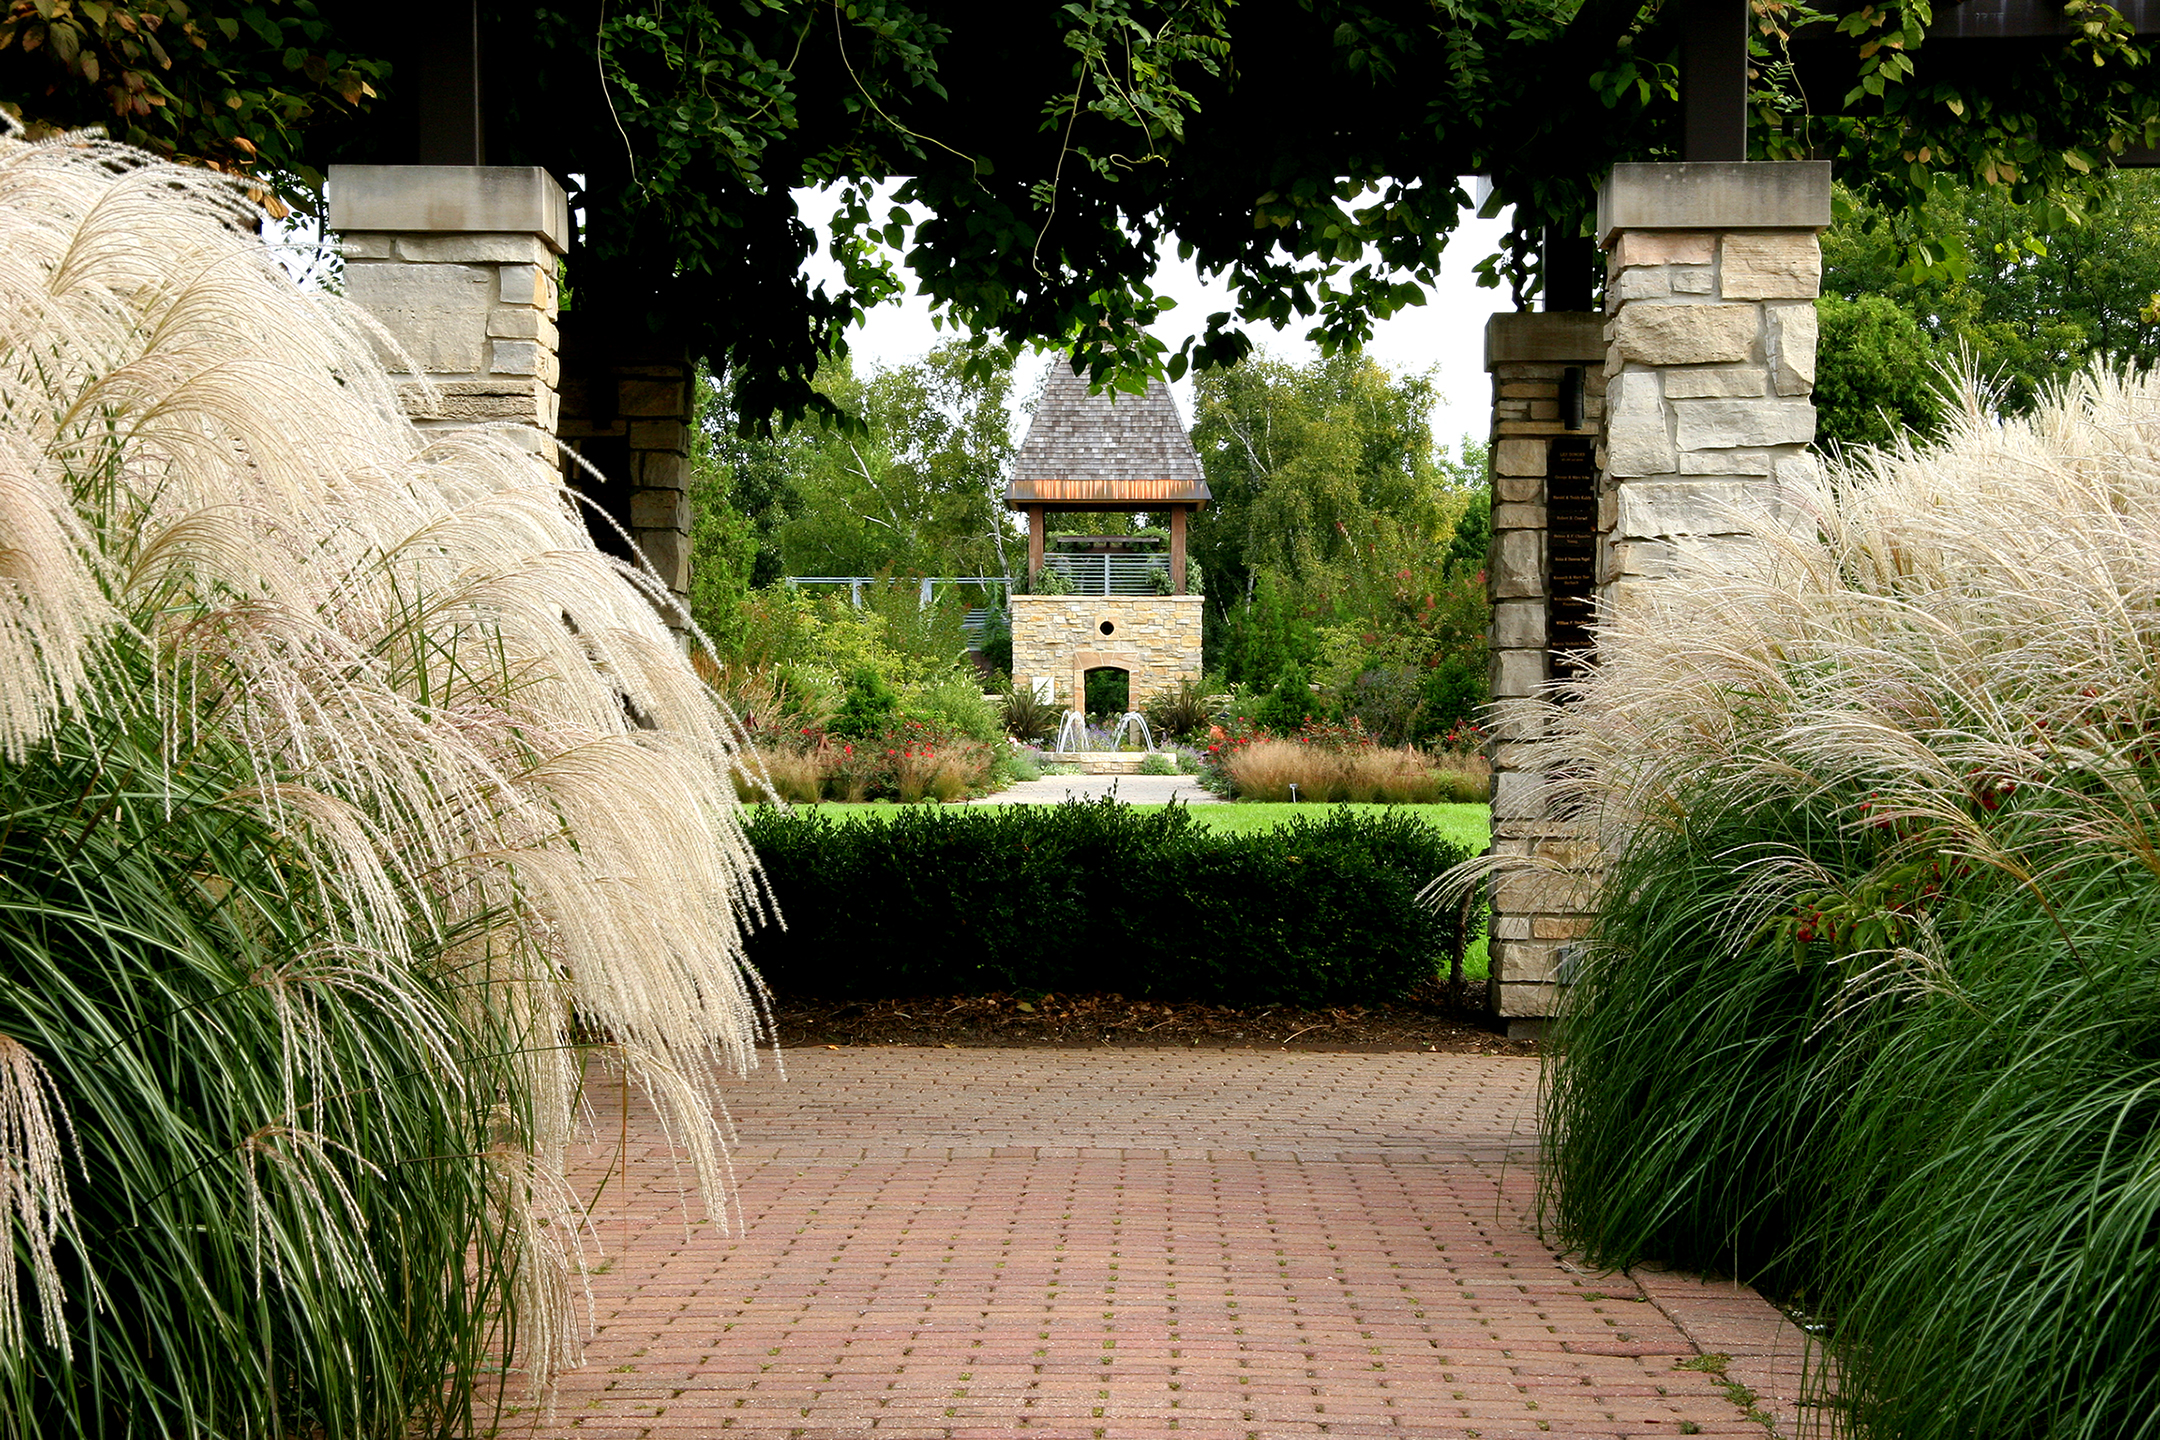 Saiki Design has been involved with planning and design at Olbrich Botanical Gardens since 1992 beginning with a collaborative master plan and numerous individual garden designs and renovations.